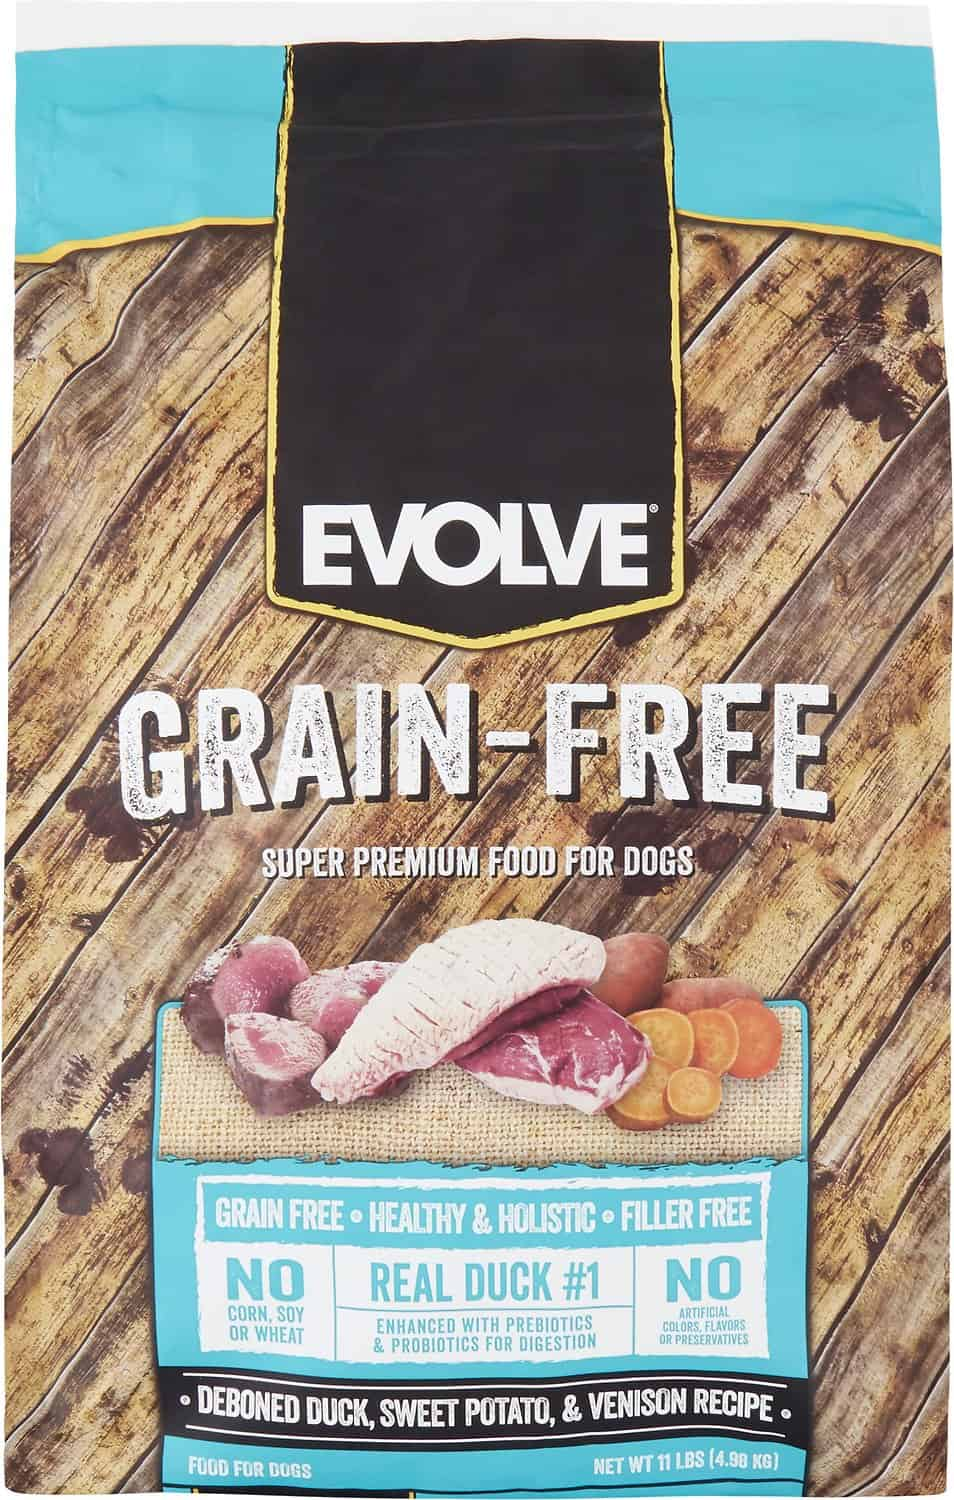 Evolve Dog Food Review 2020: Best Affordable, Premium Pet Food? 2